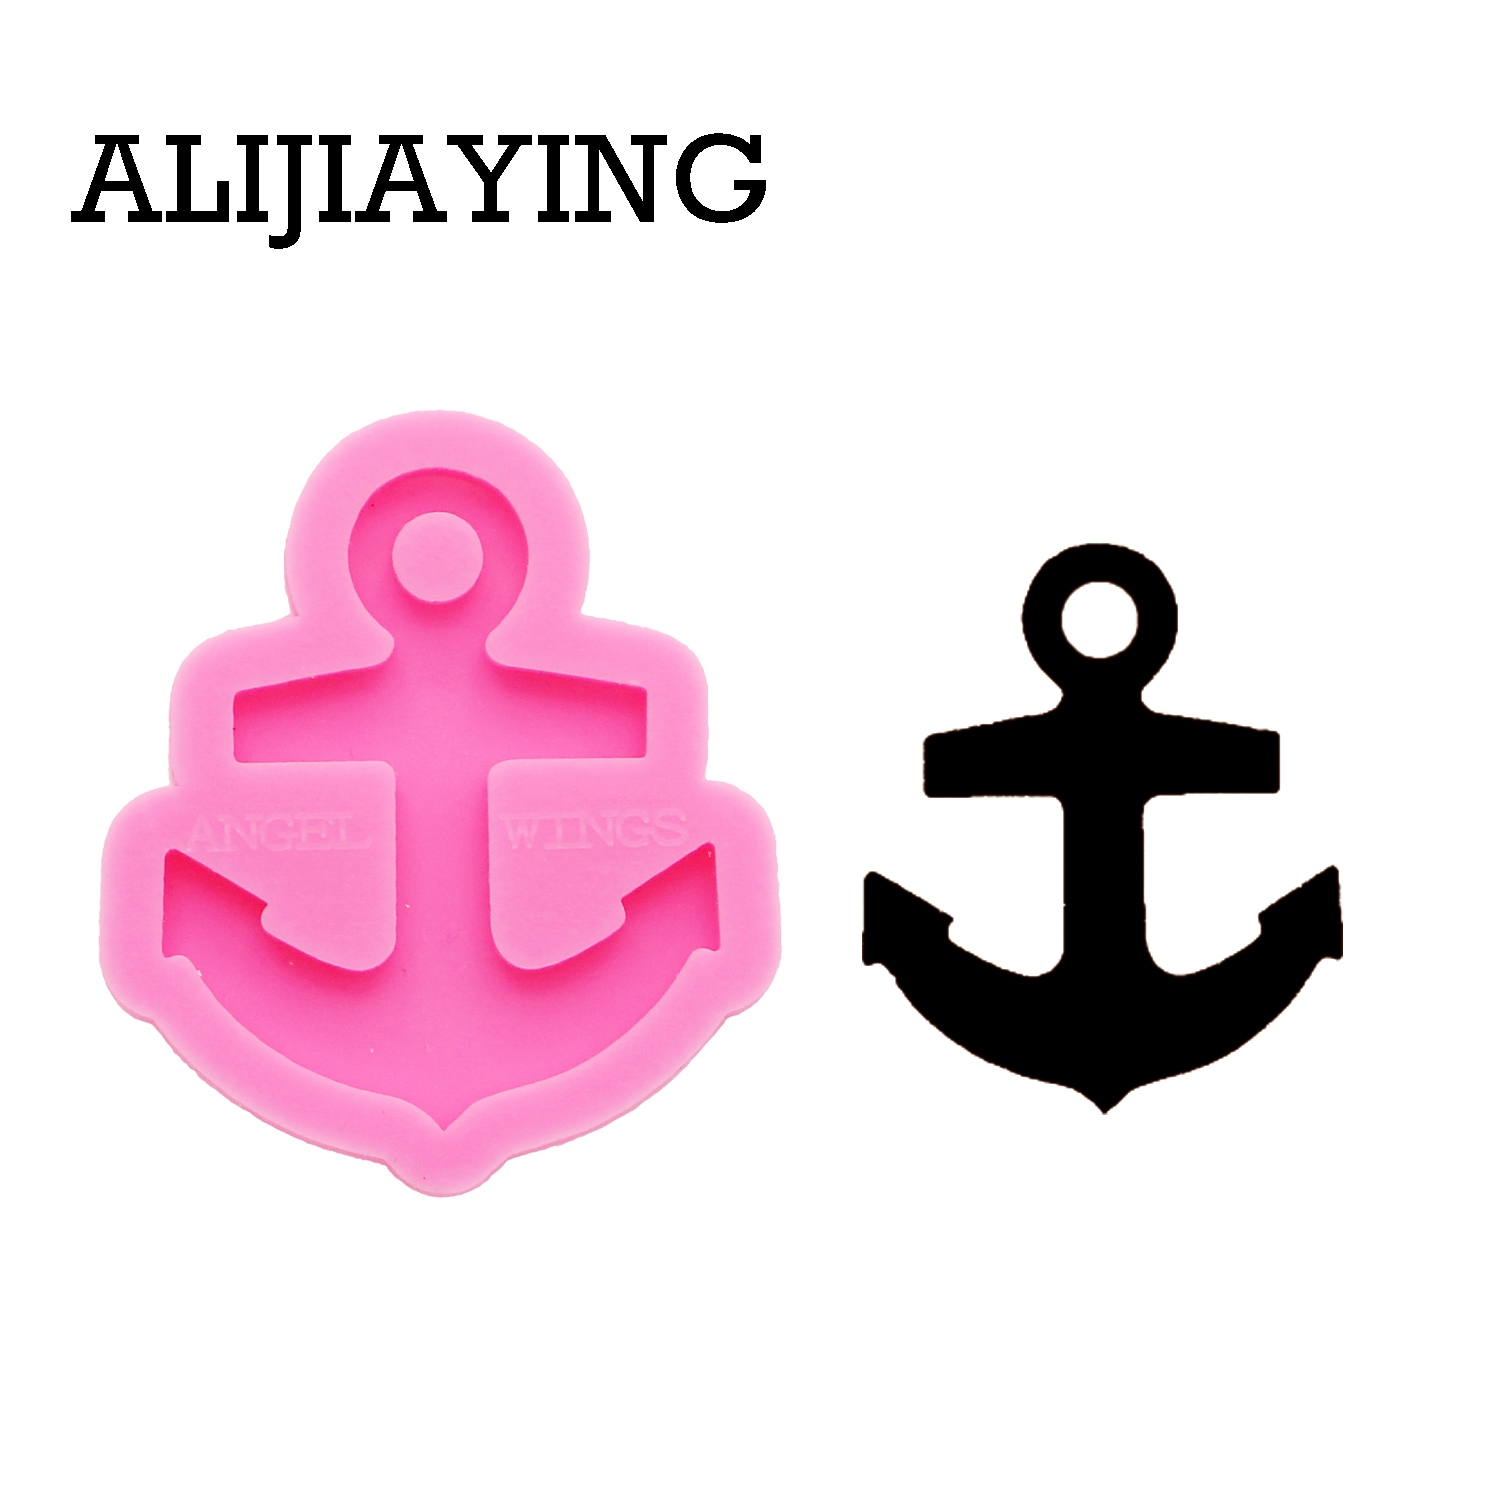 DY0197 Shiny Anchor Mold DIY Keychain Silicone Molds Craft Keyring Pendant Jewelry Keychains Mould Epoxy Resin Table